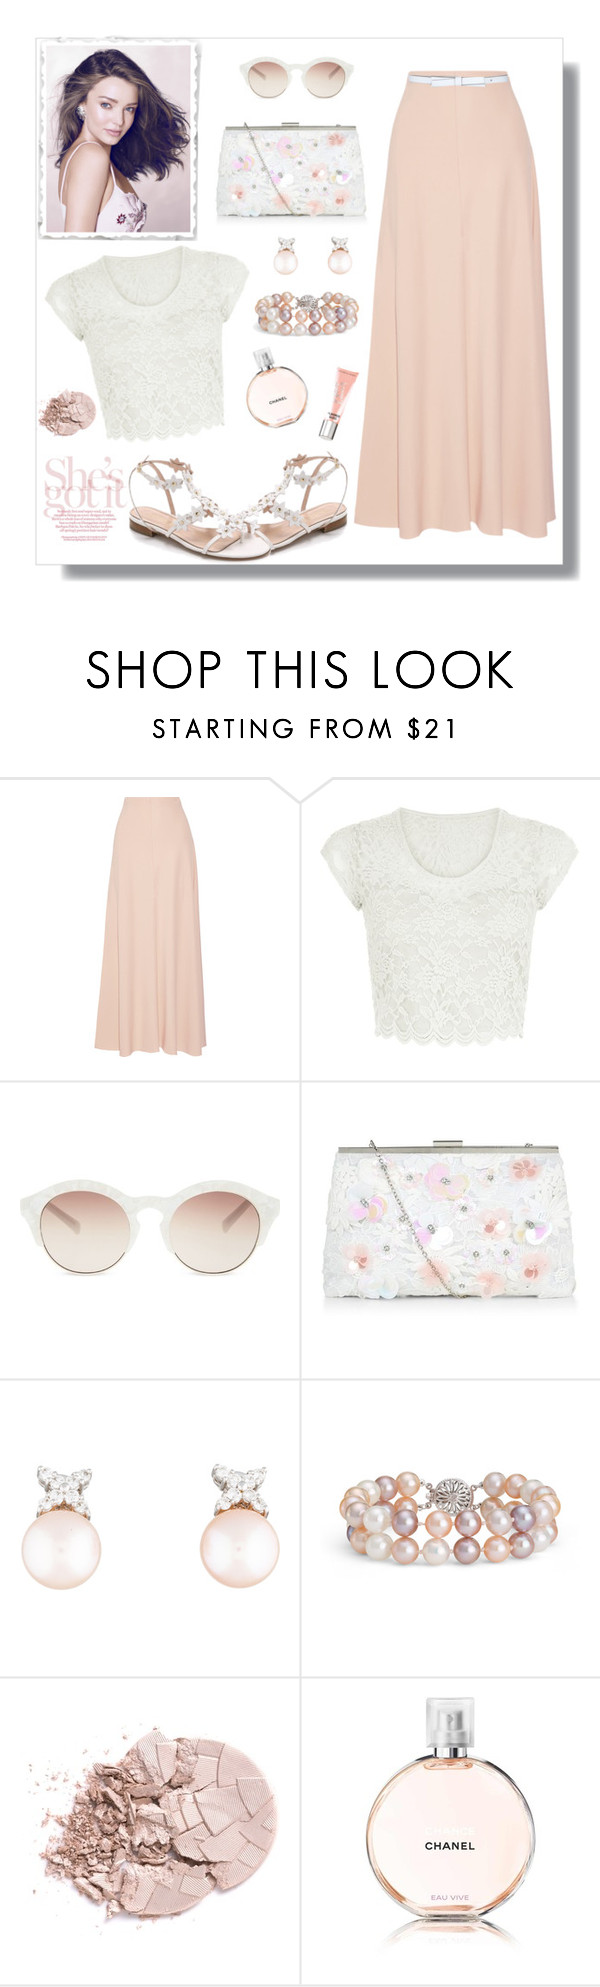 """""""Untitled #948"""" by gallant81 ❤ liked on Polyvore featuring The Row, Oscar de la Renta, New Look, self-portrait, Blue Nile, Chanel, Beauty Rush, Kerr® and Kate Spade"""